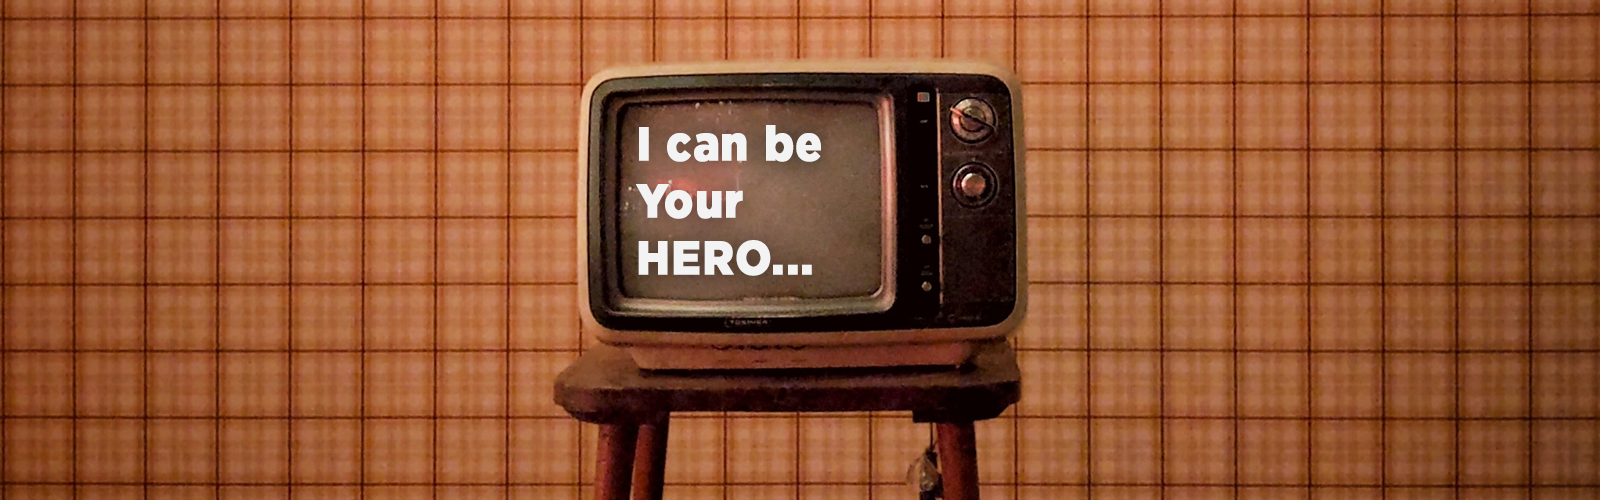 hero-image-tips-and-tricks-an-old-tv